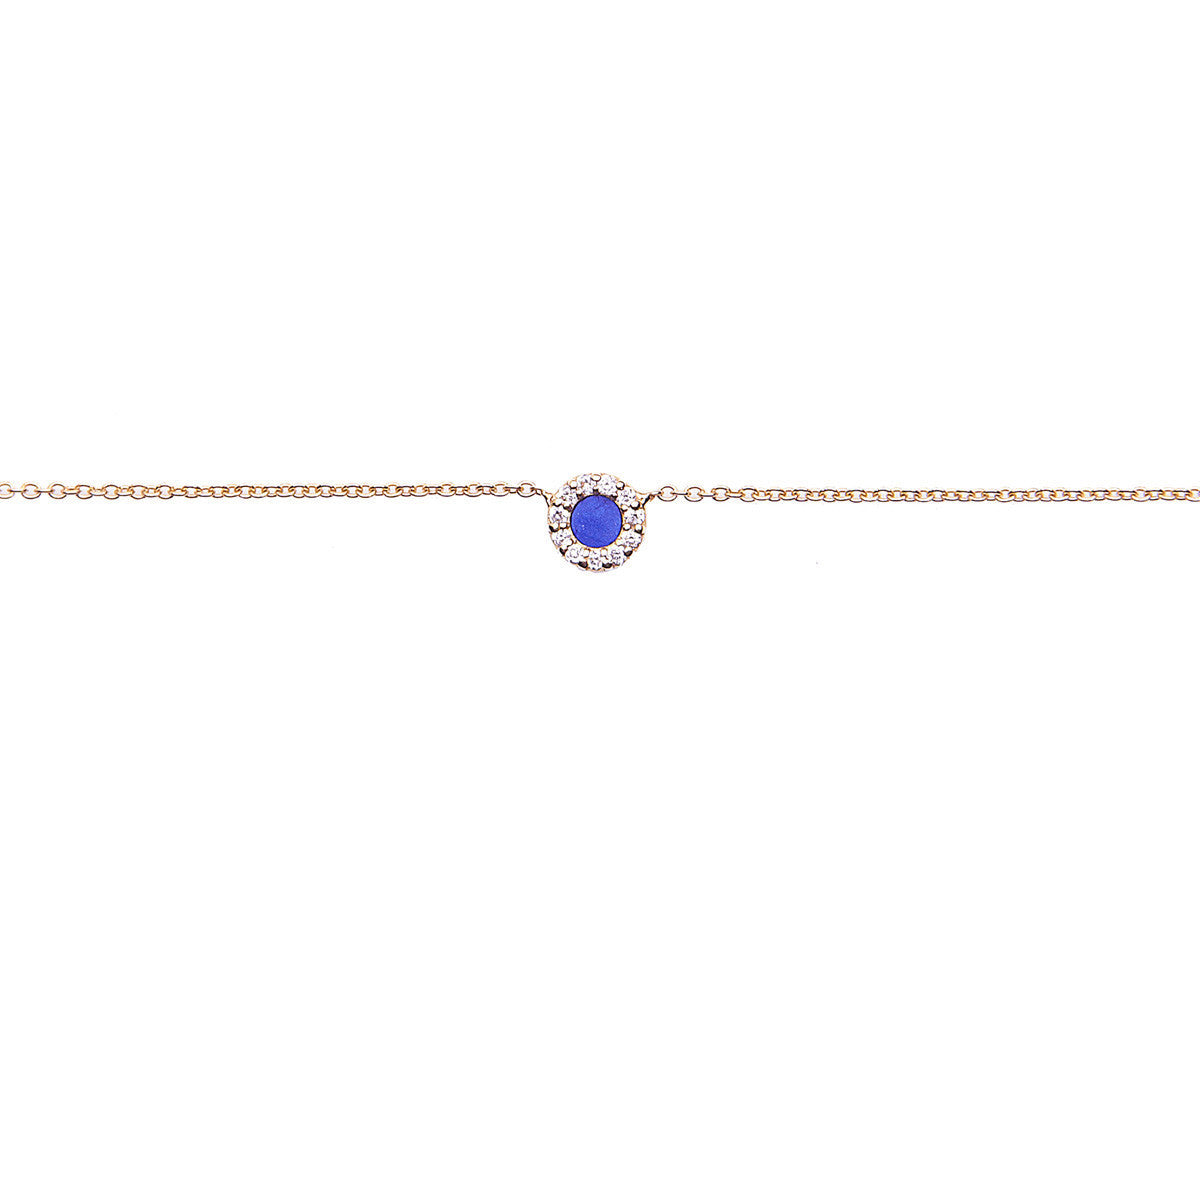 Diane Kordas Jewellery Lapis Round Evil Eye Necklace 18kt gold